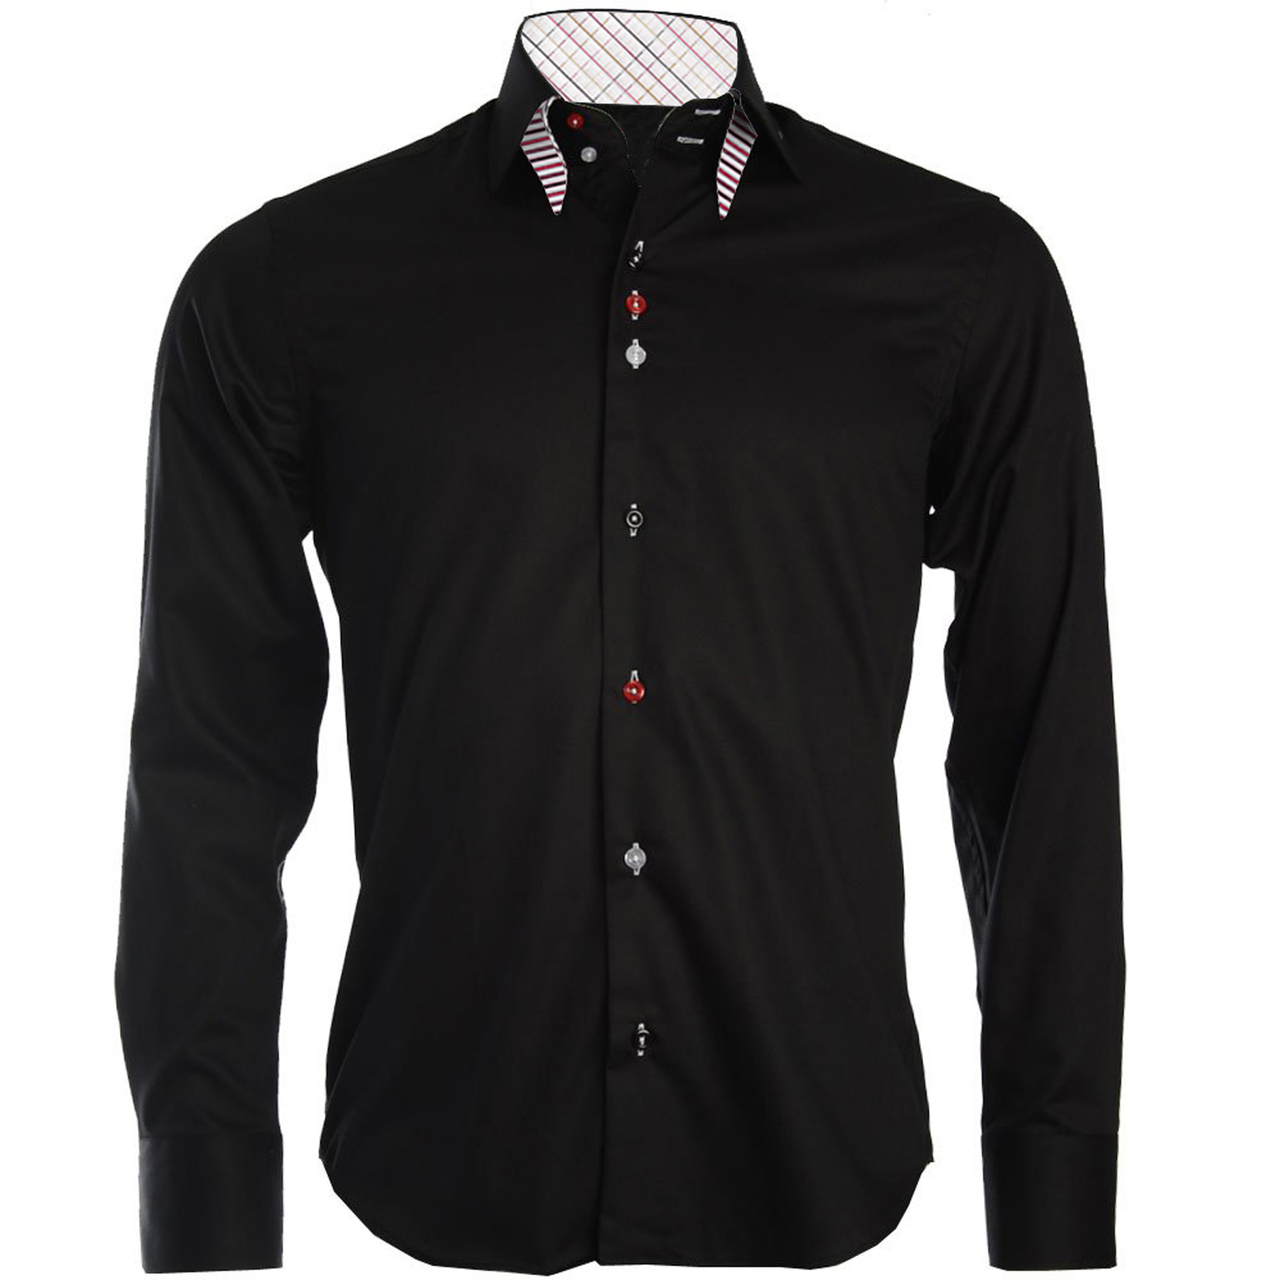 Men 39 s double button collar shirt for Mens button collar shirts